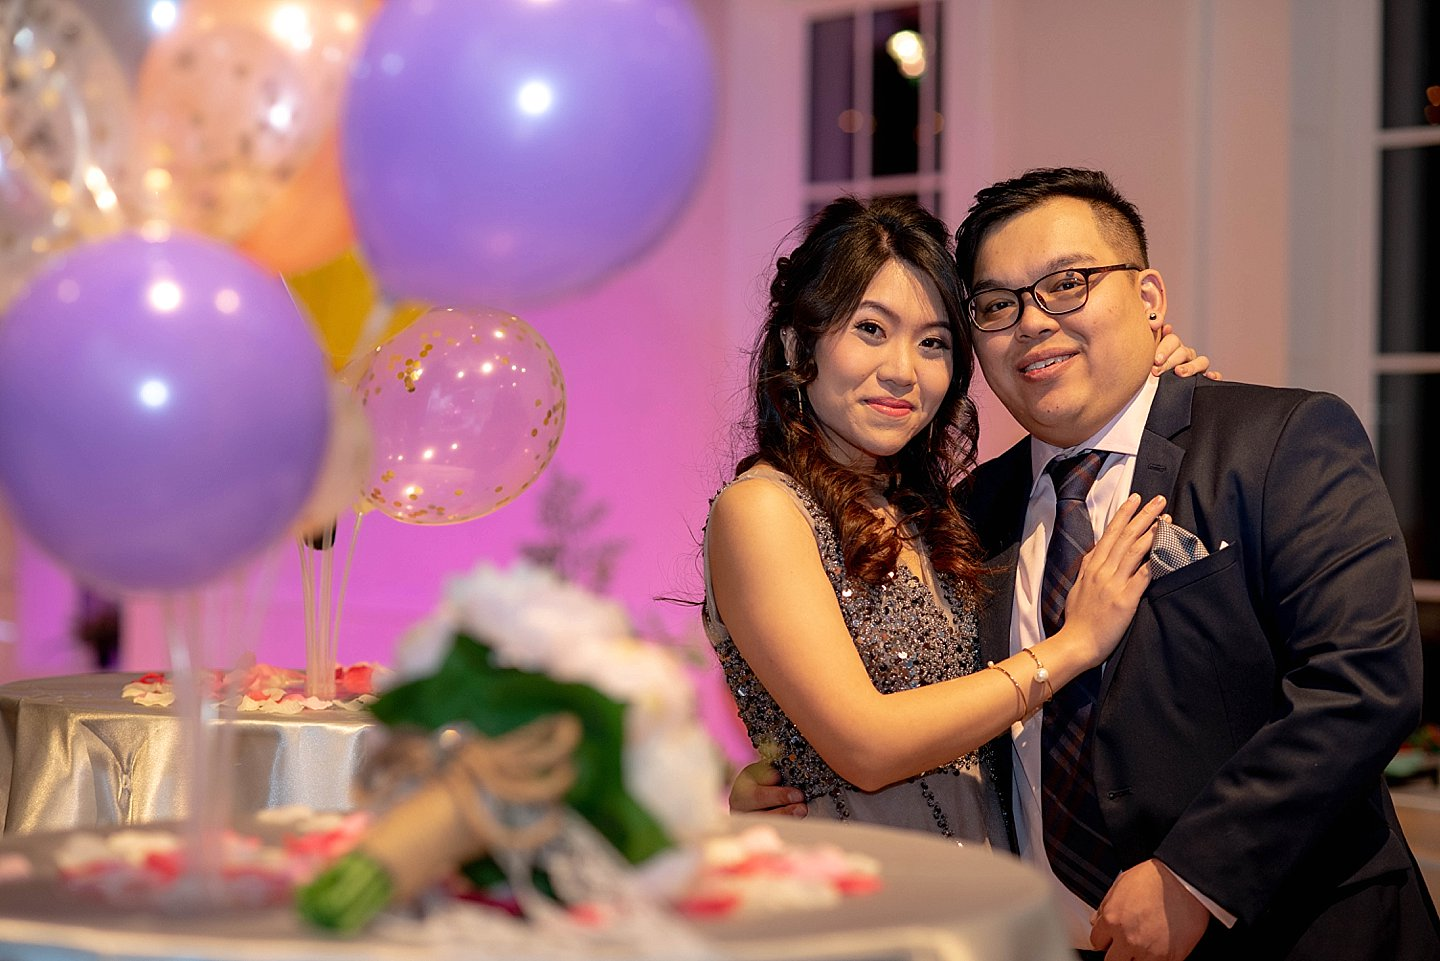 VJ Sugar-Swing-wedding-party_0002